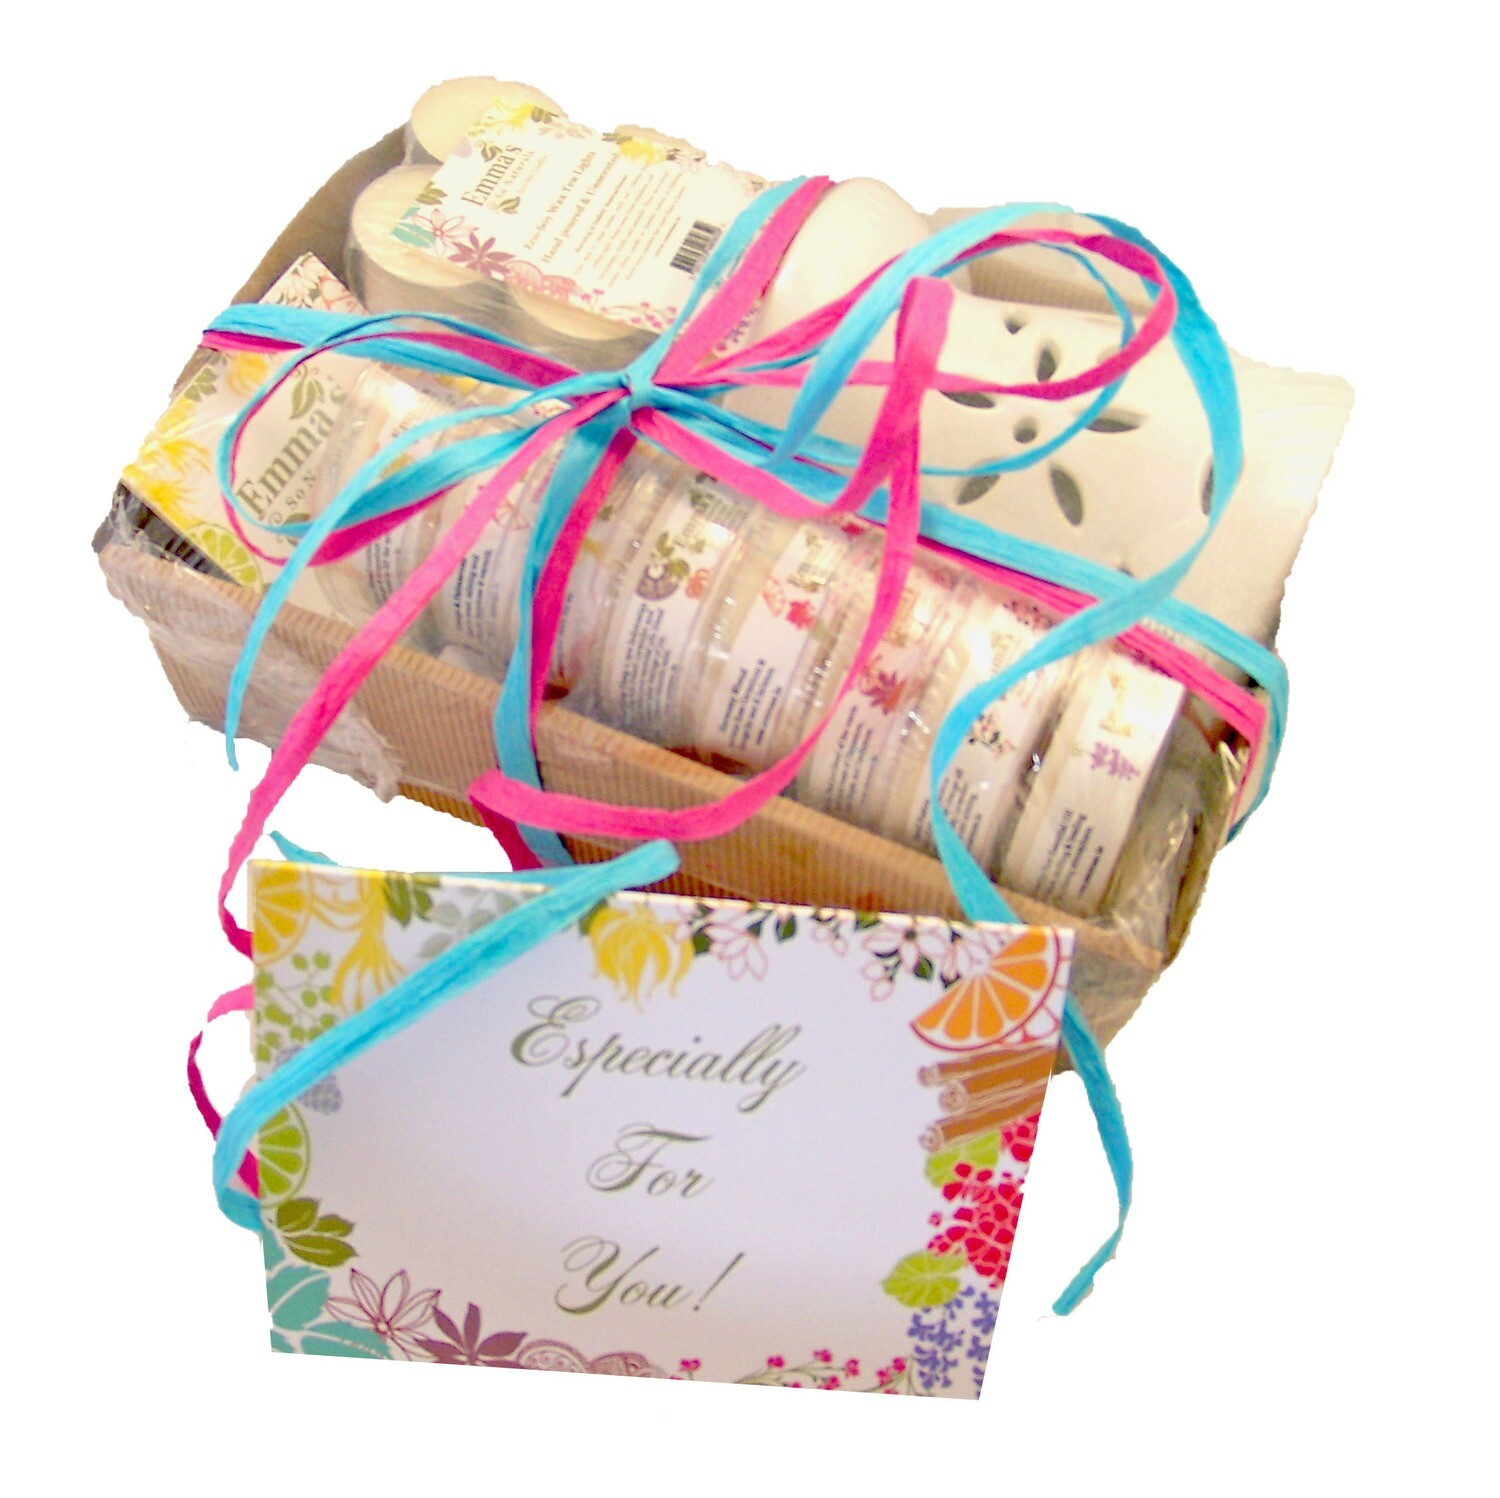 Gift-wrapped hamper - Oil Burner Gift Set (Large Set) - Ceramic Oil Burner, 8 Wax Tart Melts (9 with Pomander option) & 12 x Tealights (Gift wrap & card optional)